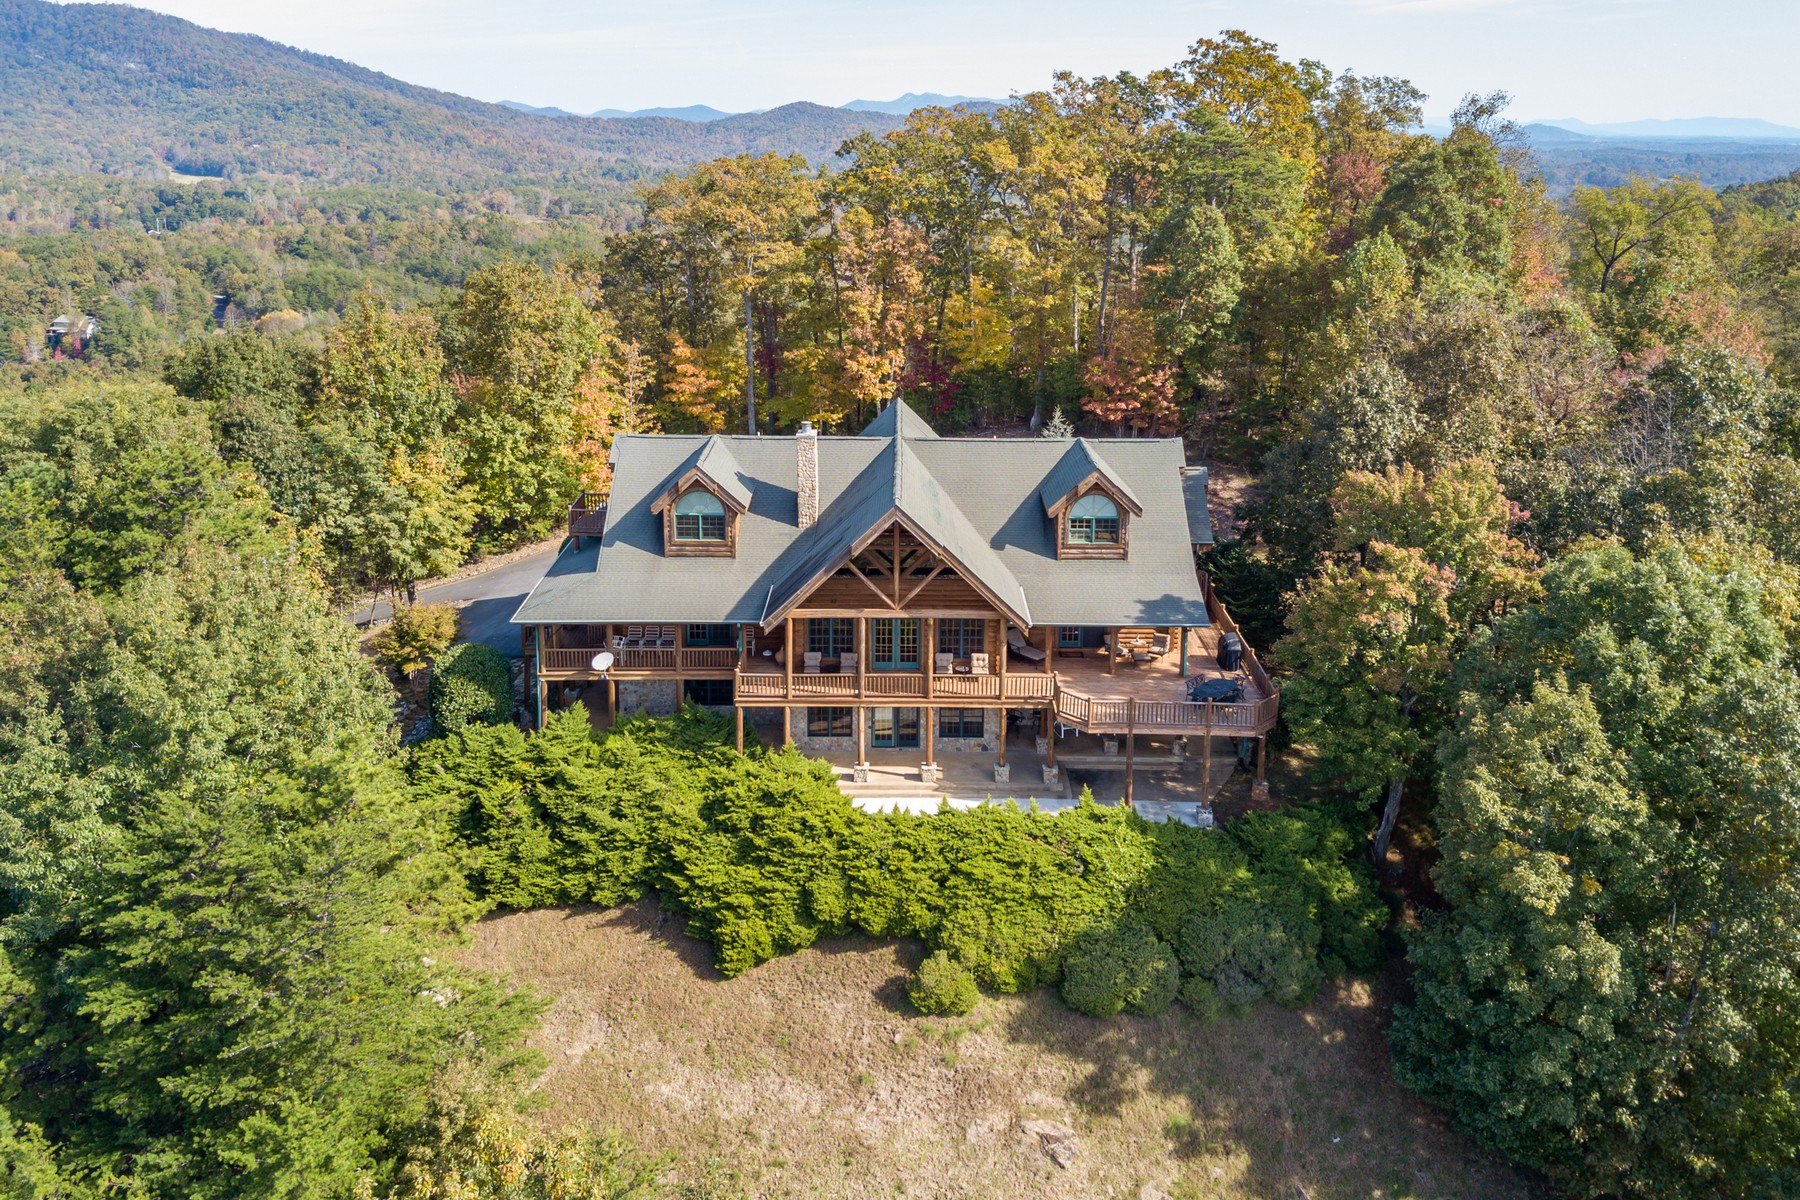 Single Family Homes for Active at 166 Eagles Crest Way in Lake Lure, NC 166 Eagles Crest Way Lake Lure, North Carolina 28746 United States